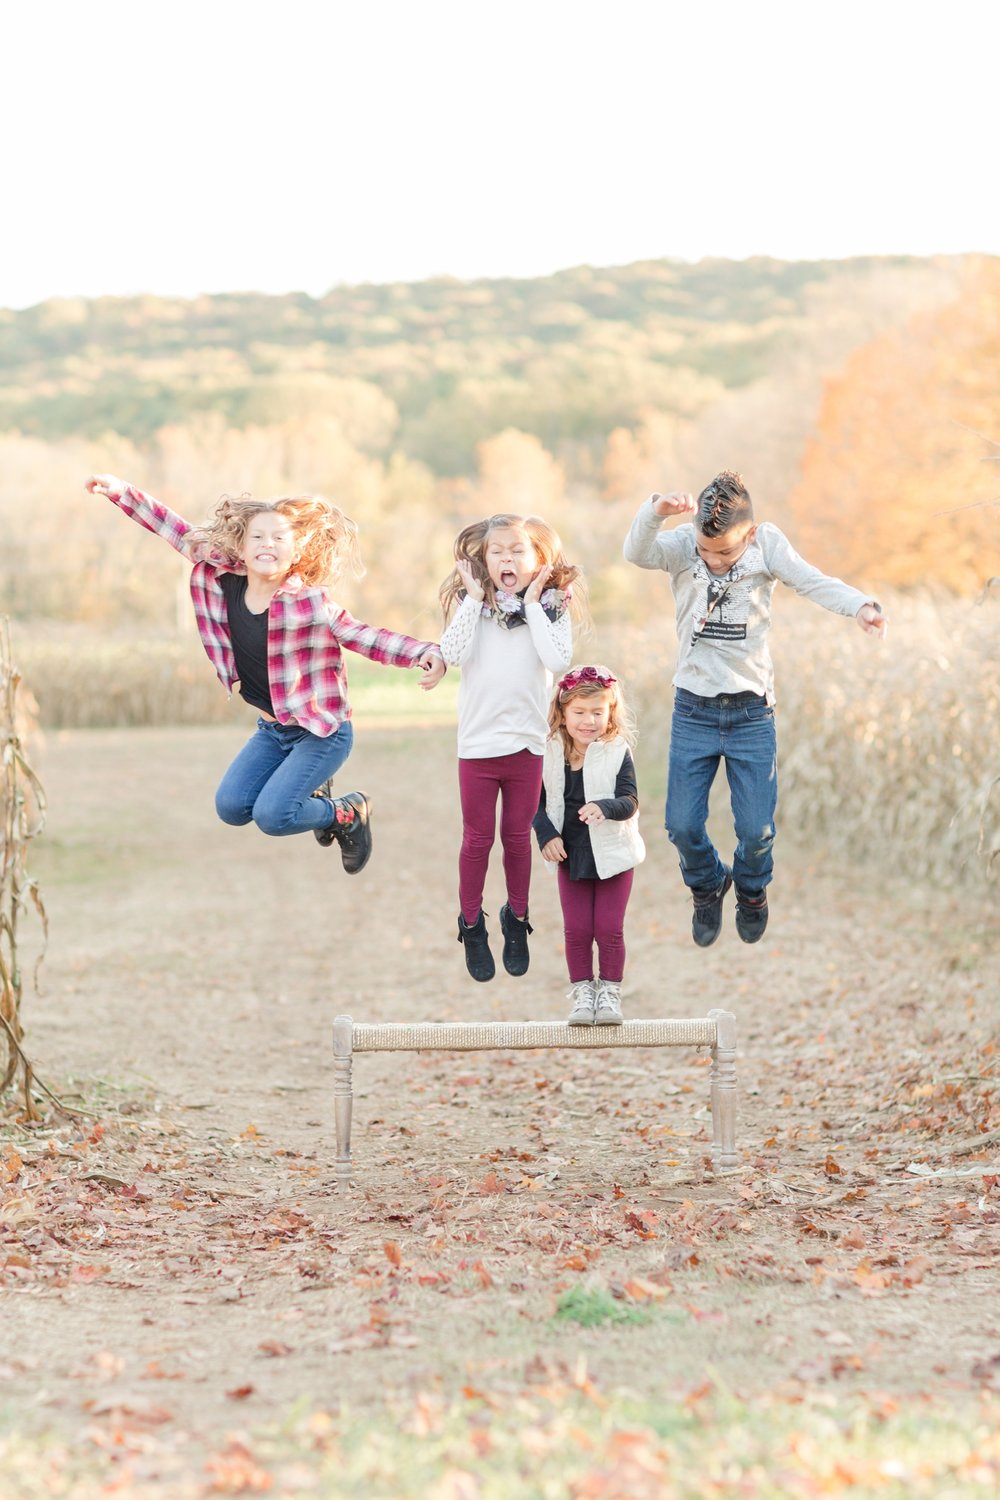 Weddle Family-298_baltimore-maryland-family-photographer-ravens-family-photos-anna-grace-photography-photo.jpg